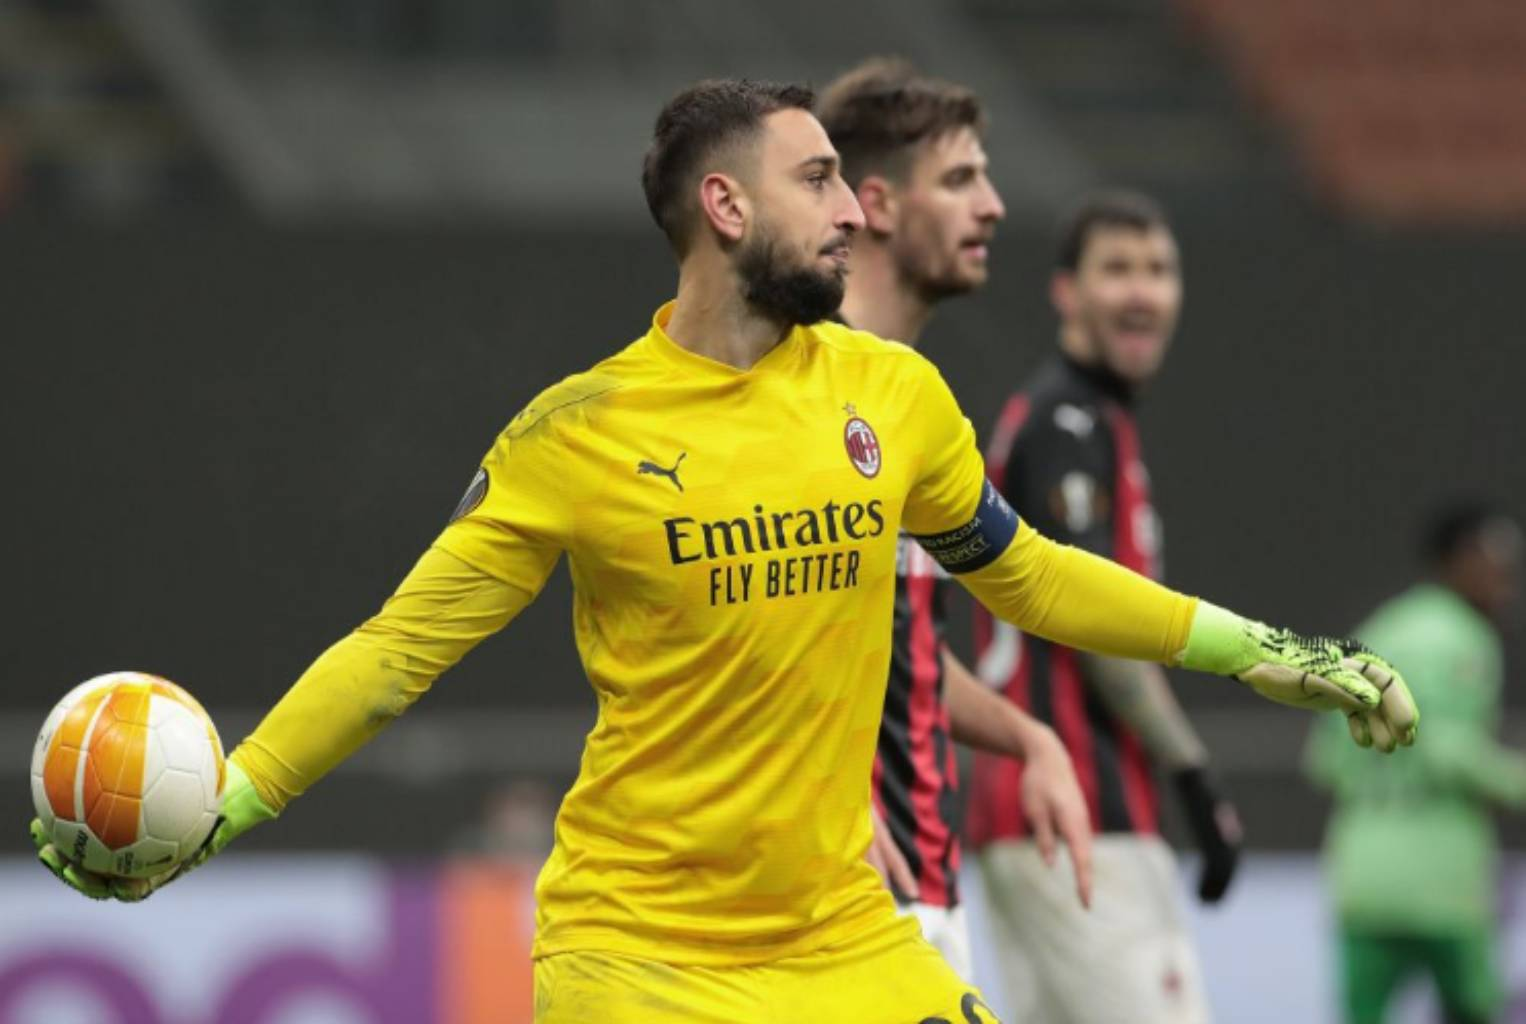 Donnarumma to sign for Psg